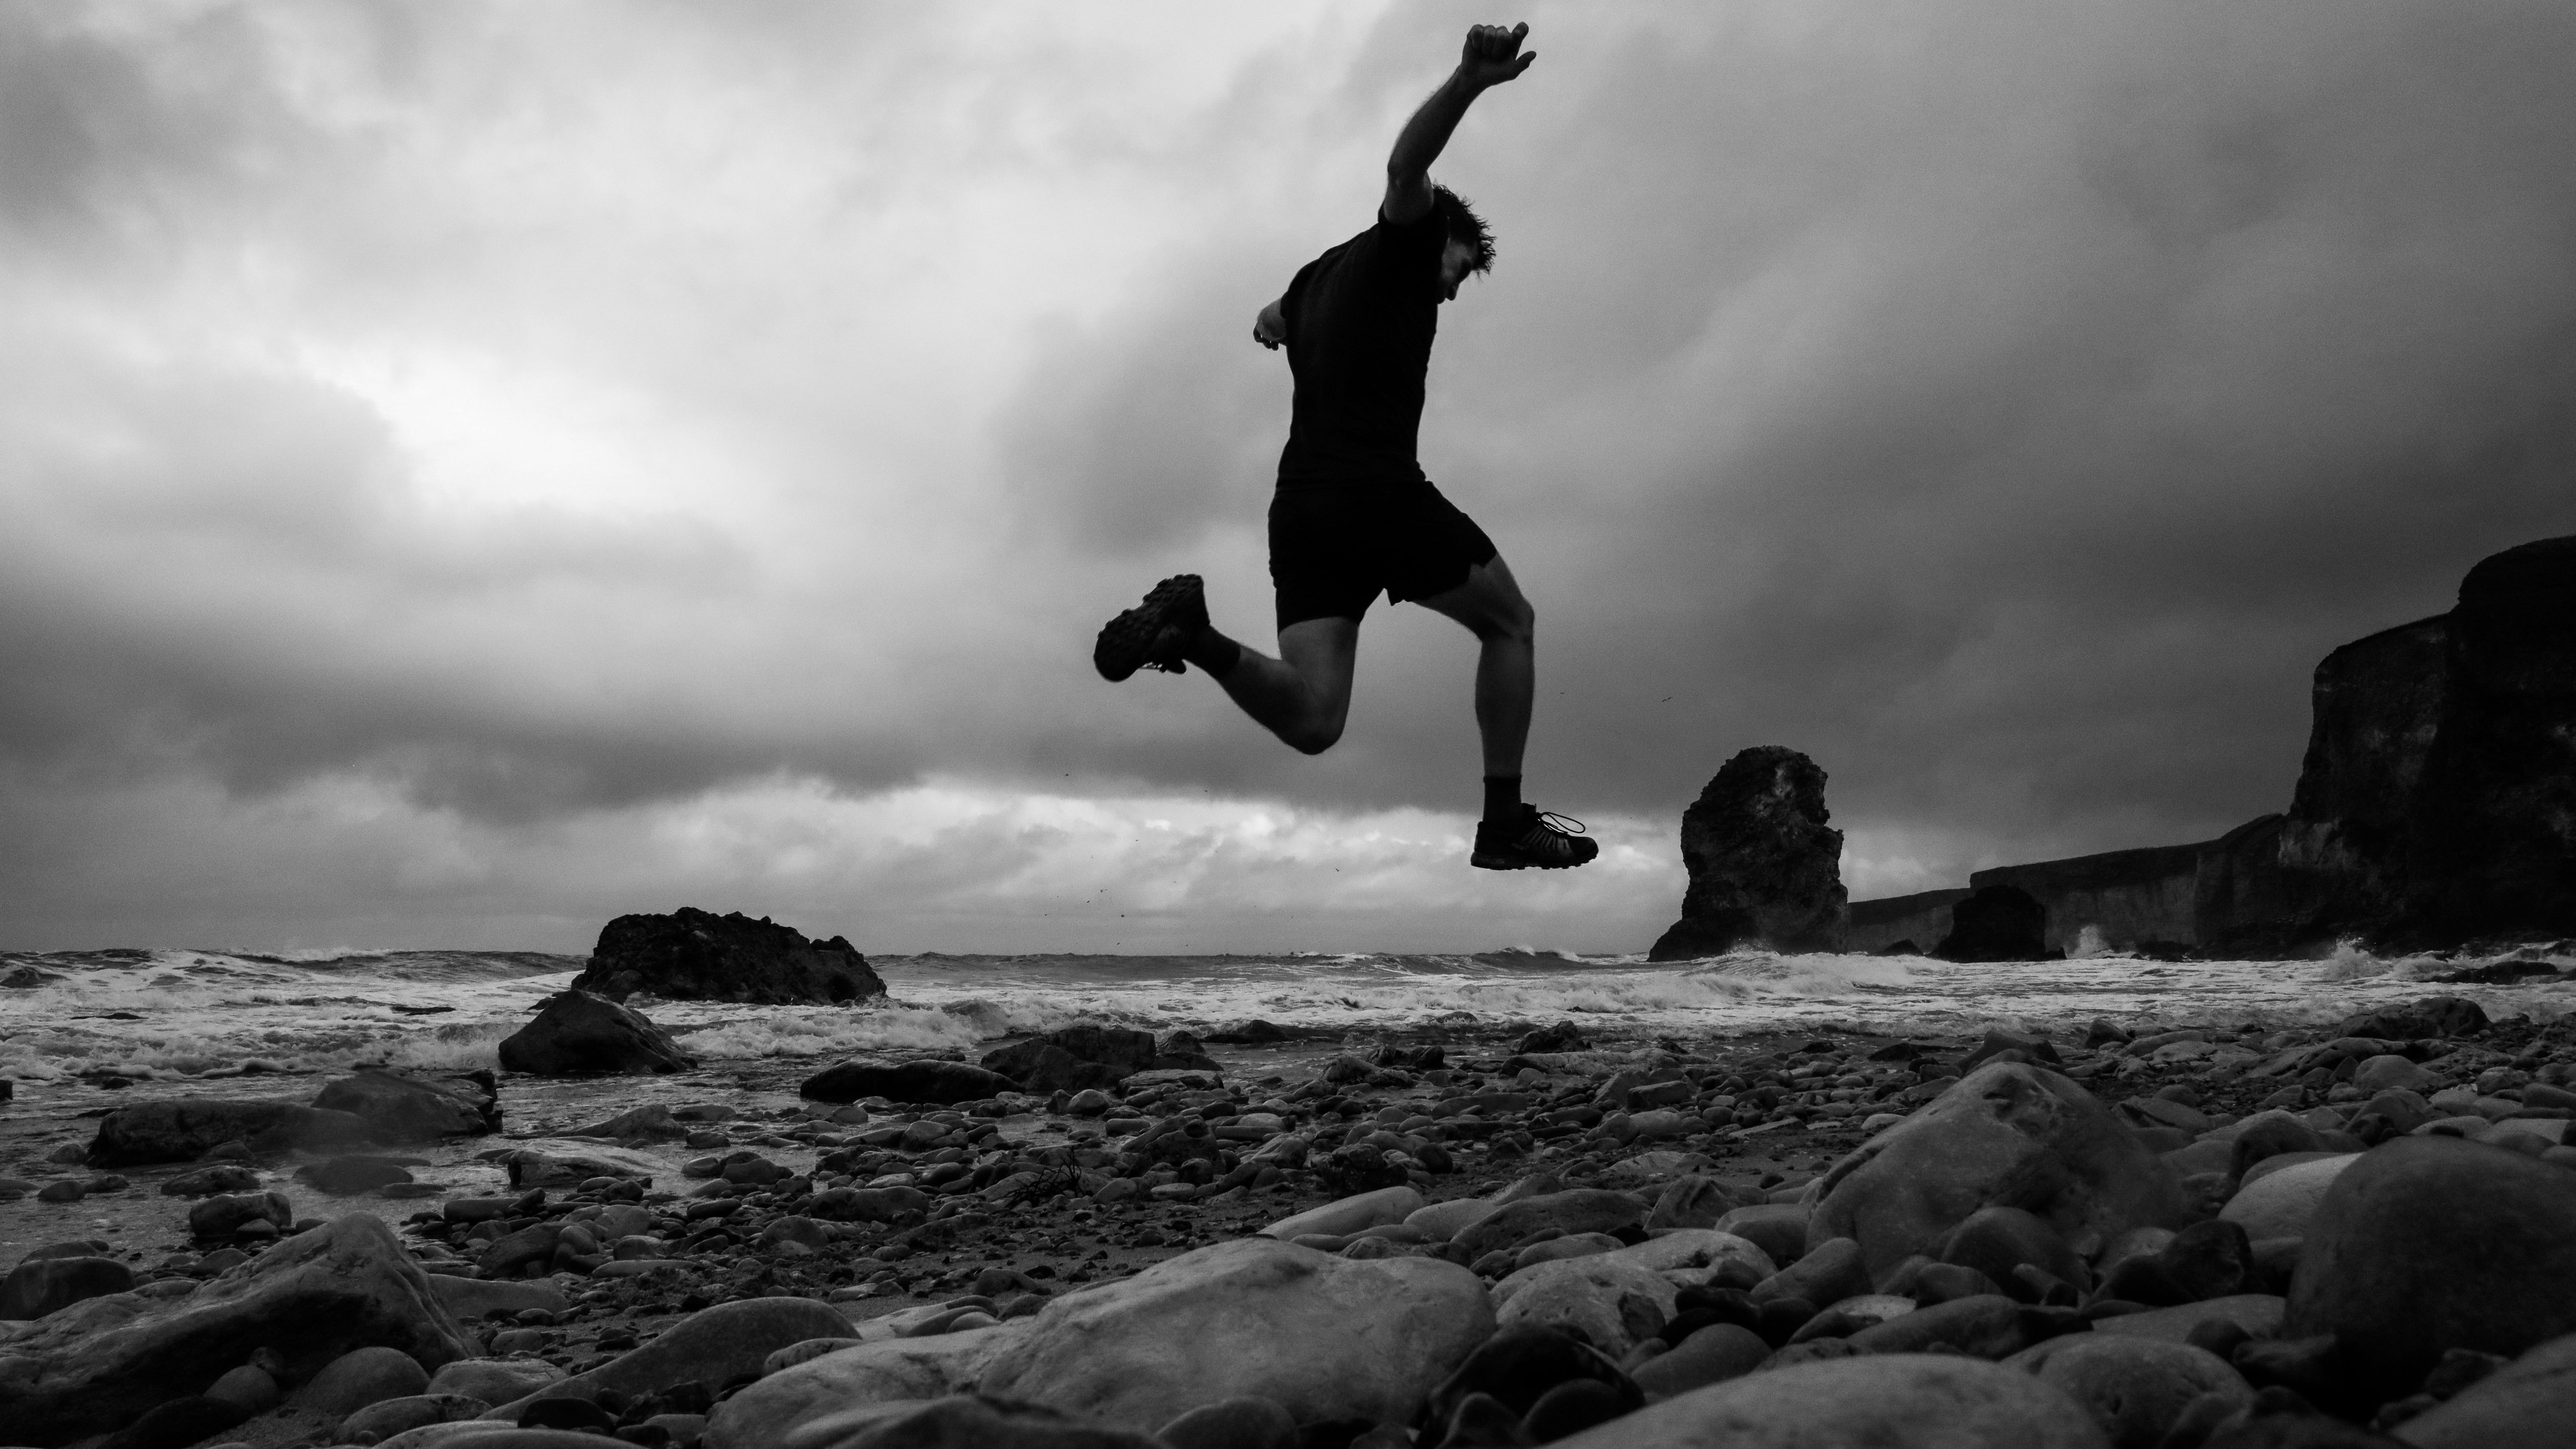 A low-angle shot shows a man in the air as he runs on a rocky beach.